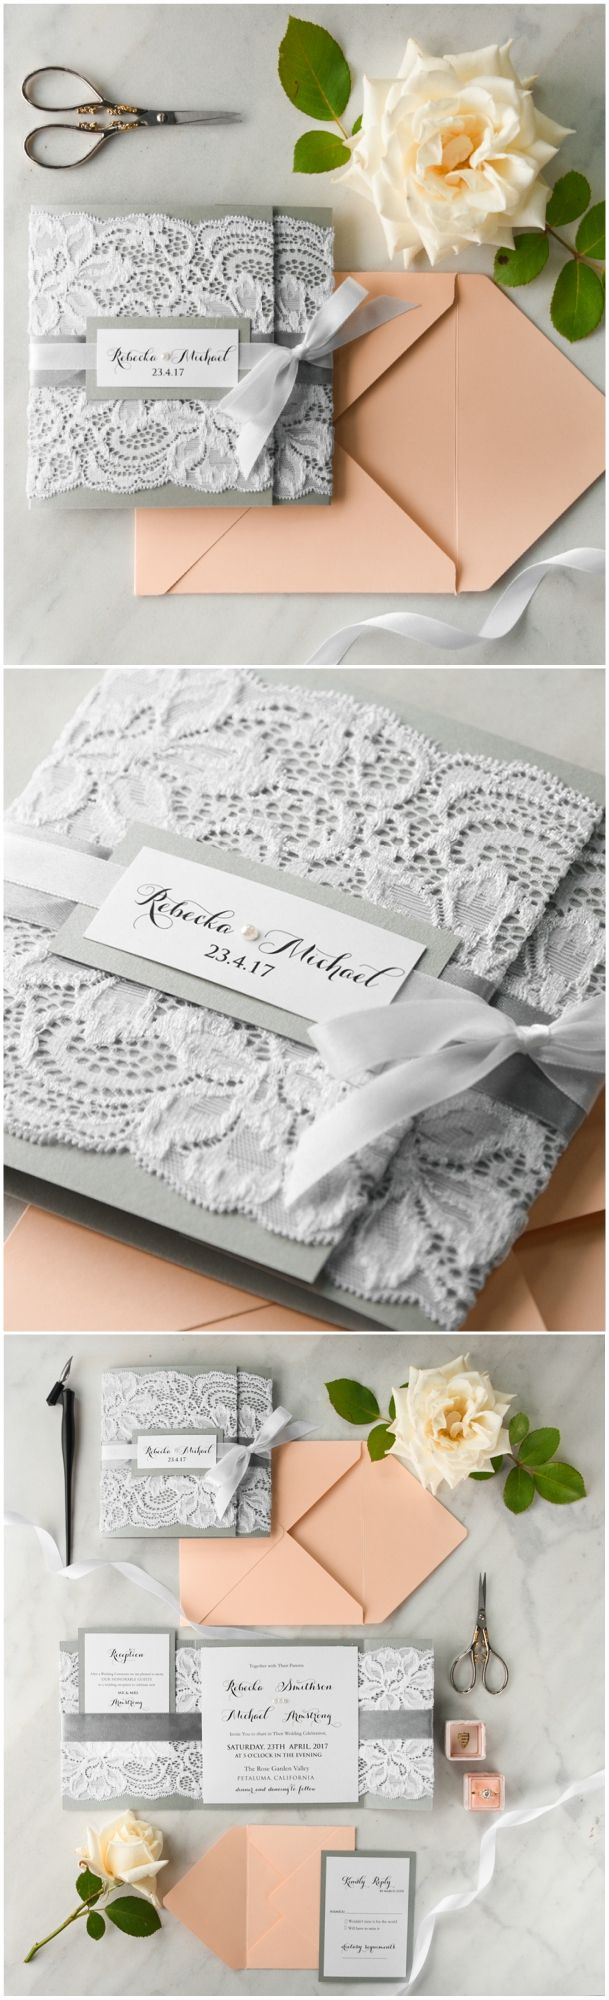 Peach & Grey Lace Wedding Invitations #romantic #lace #peach #grey #vintage #elegant #weddingideas #weddinginvitations